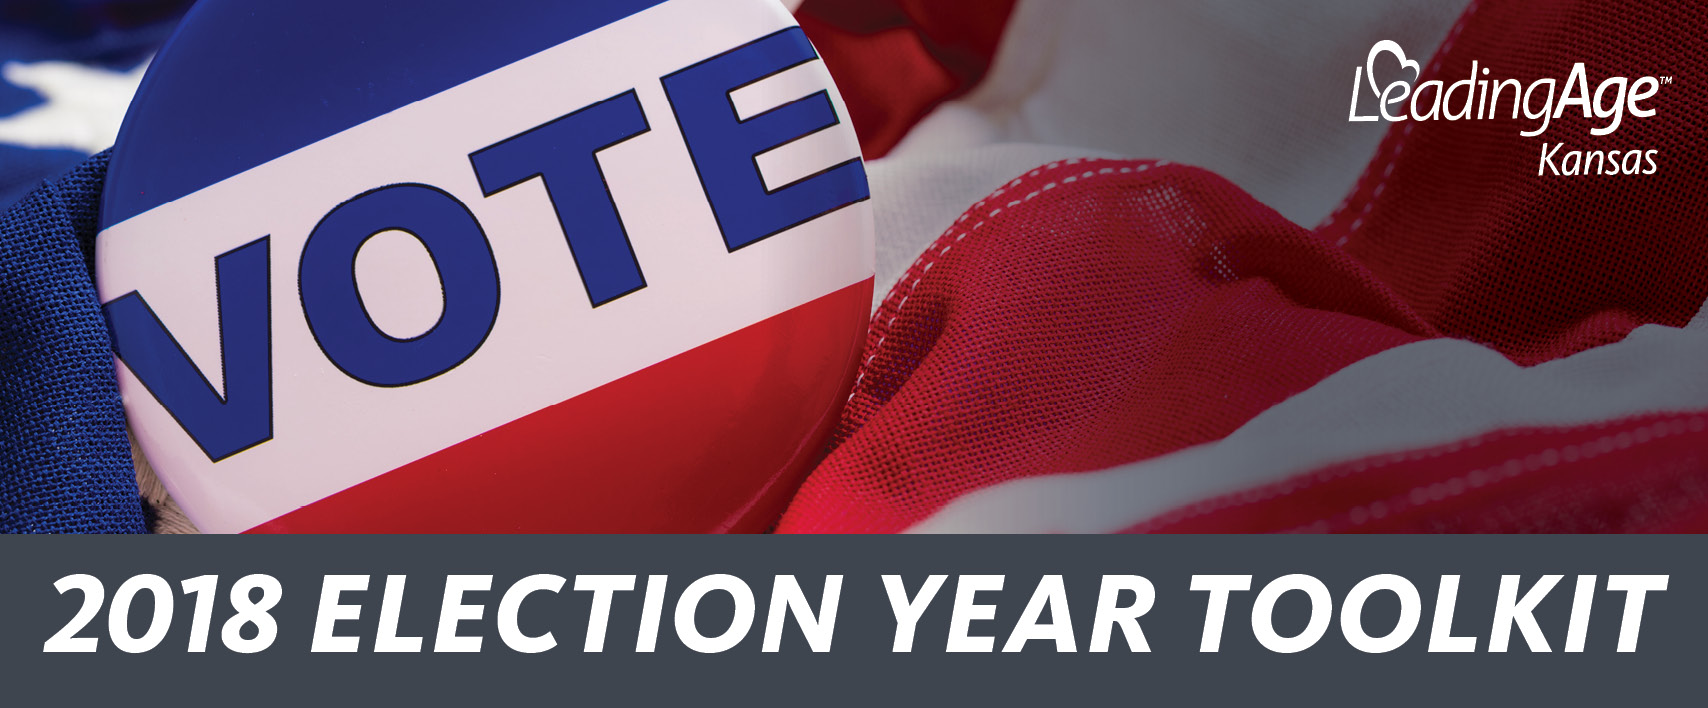 Election Year Toolkit Banner